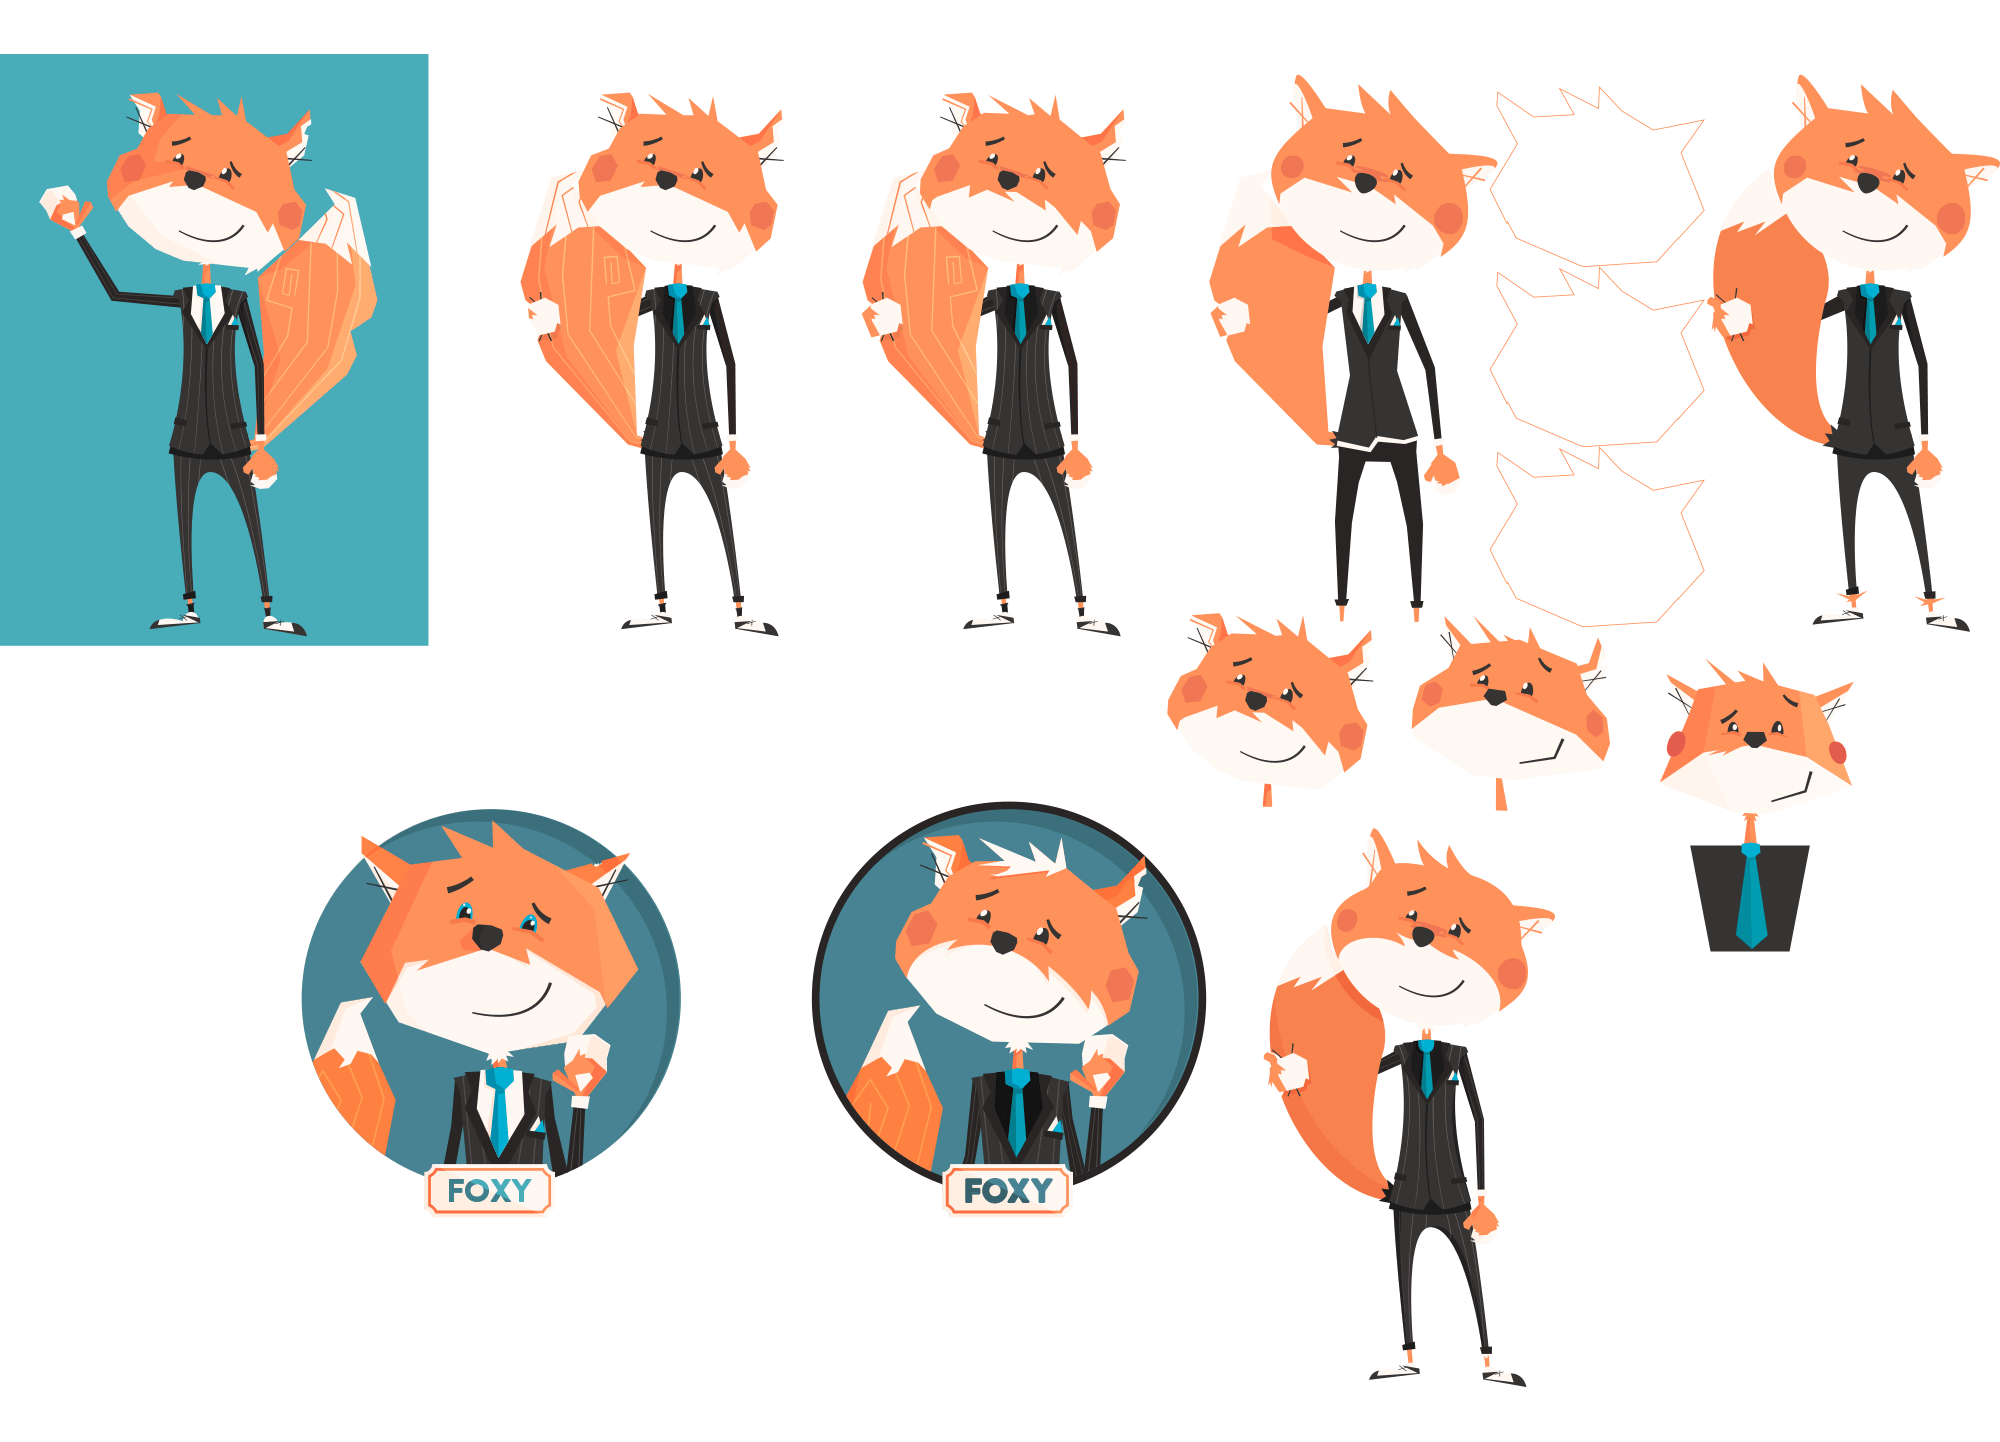 Various versions of Foxy. Notice the different styles. With/out rosey cheeks, scrappy/groomed fur.